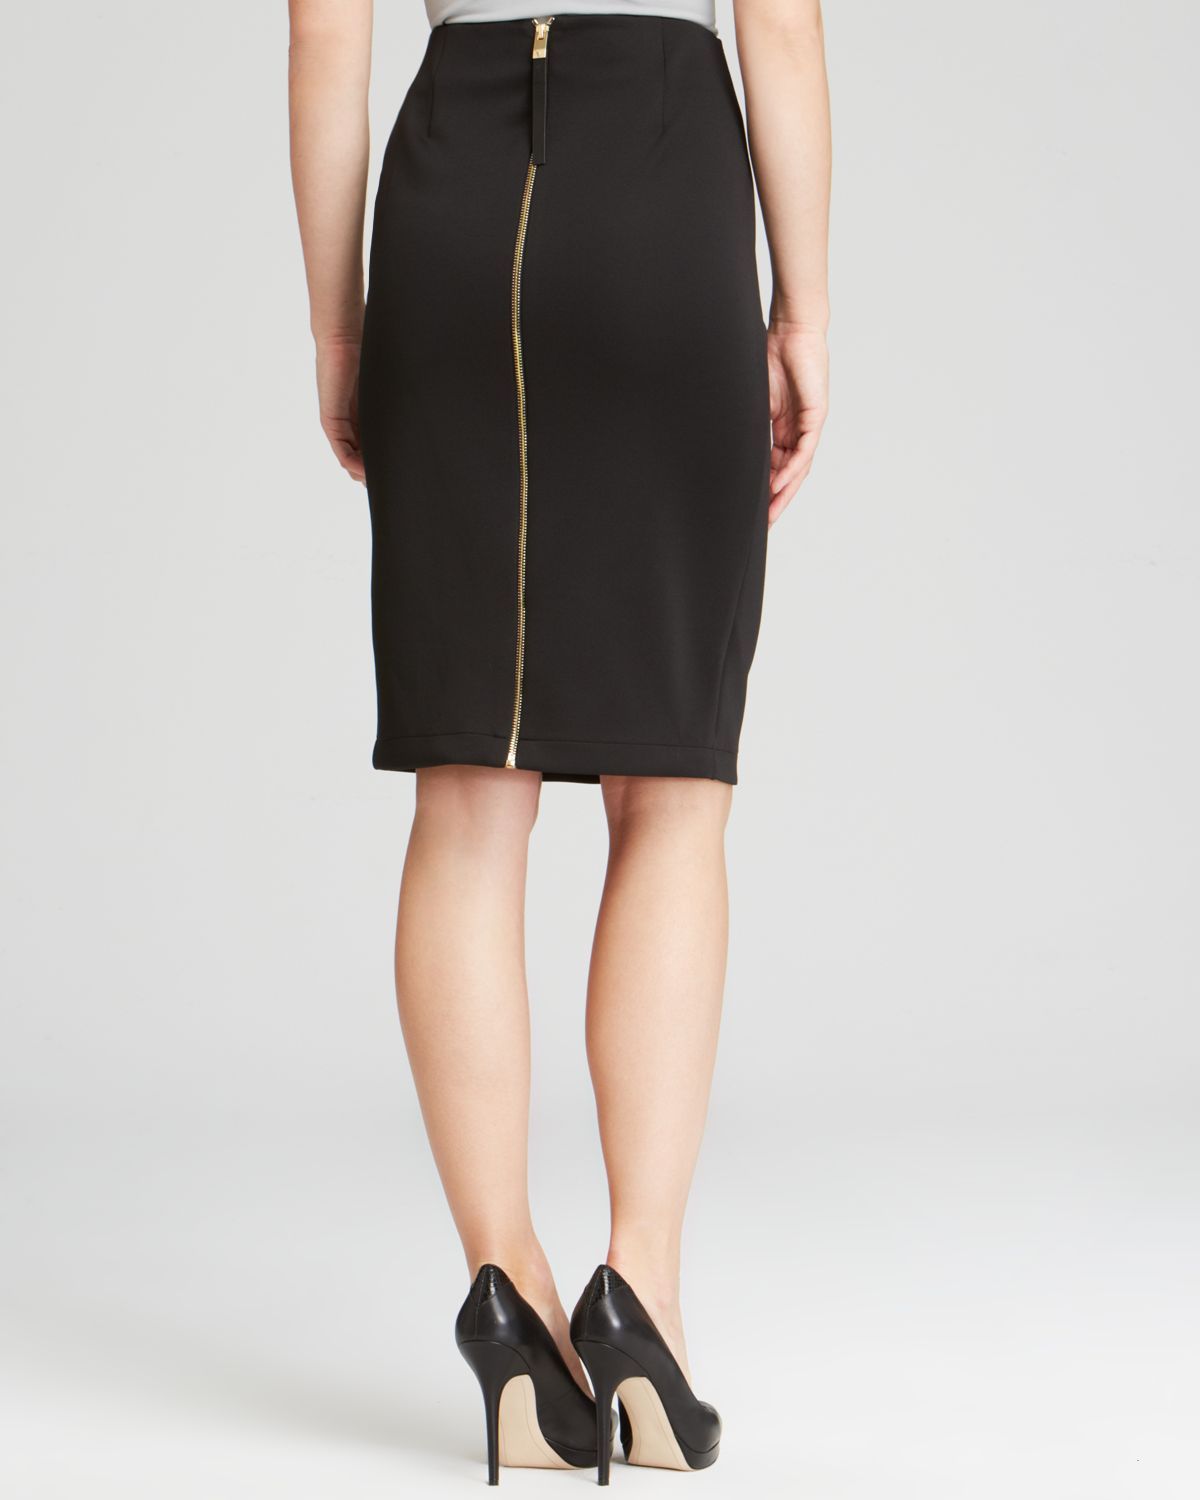 Vince camuto Back Zip Pencil Skirt in Black | Lyst